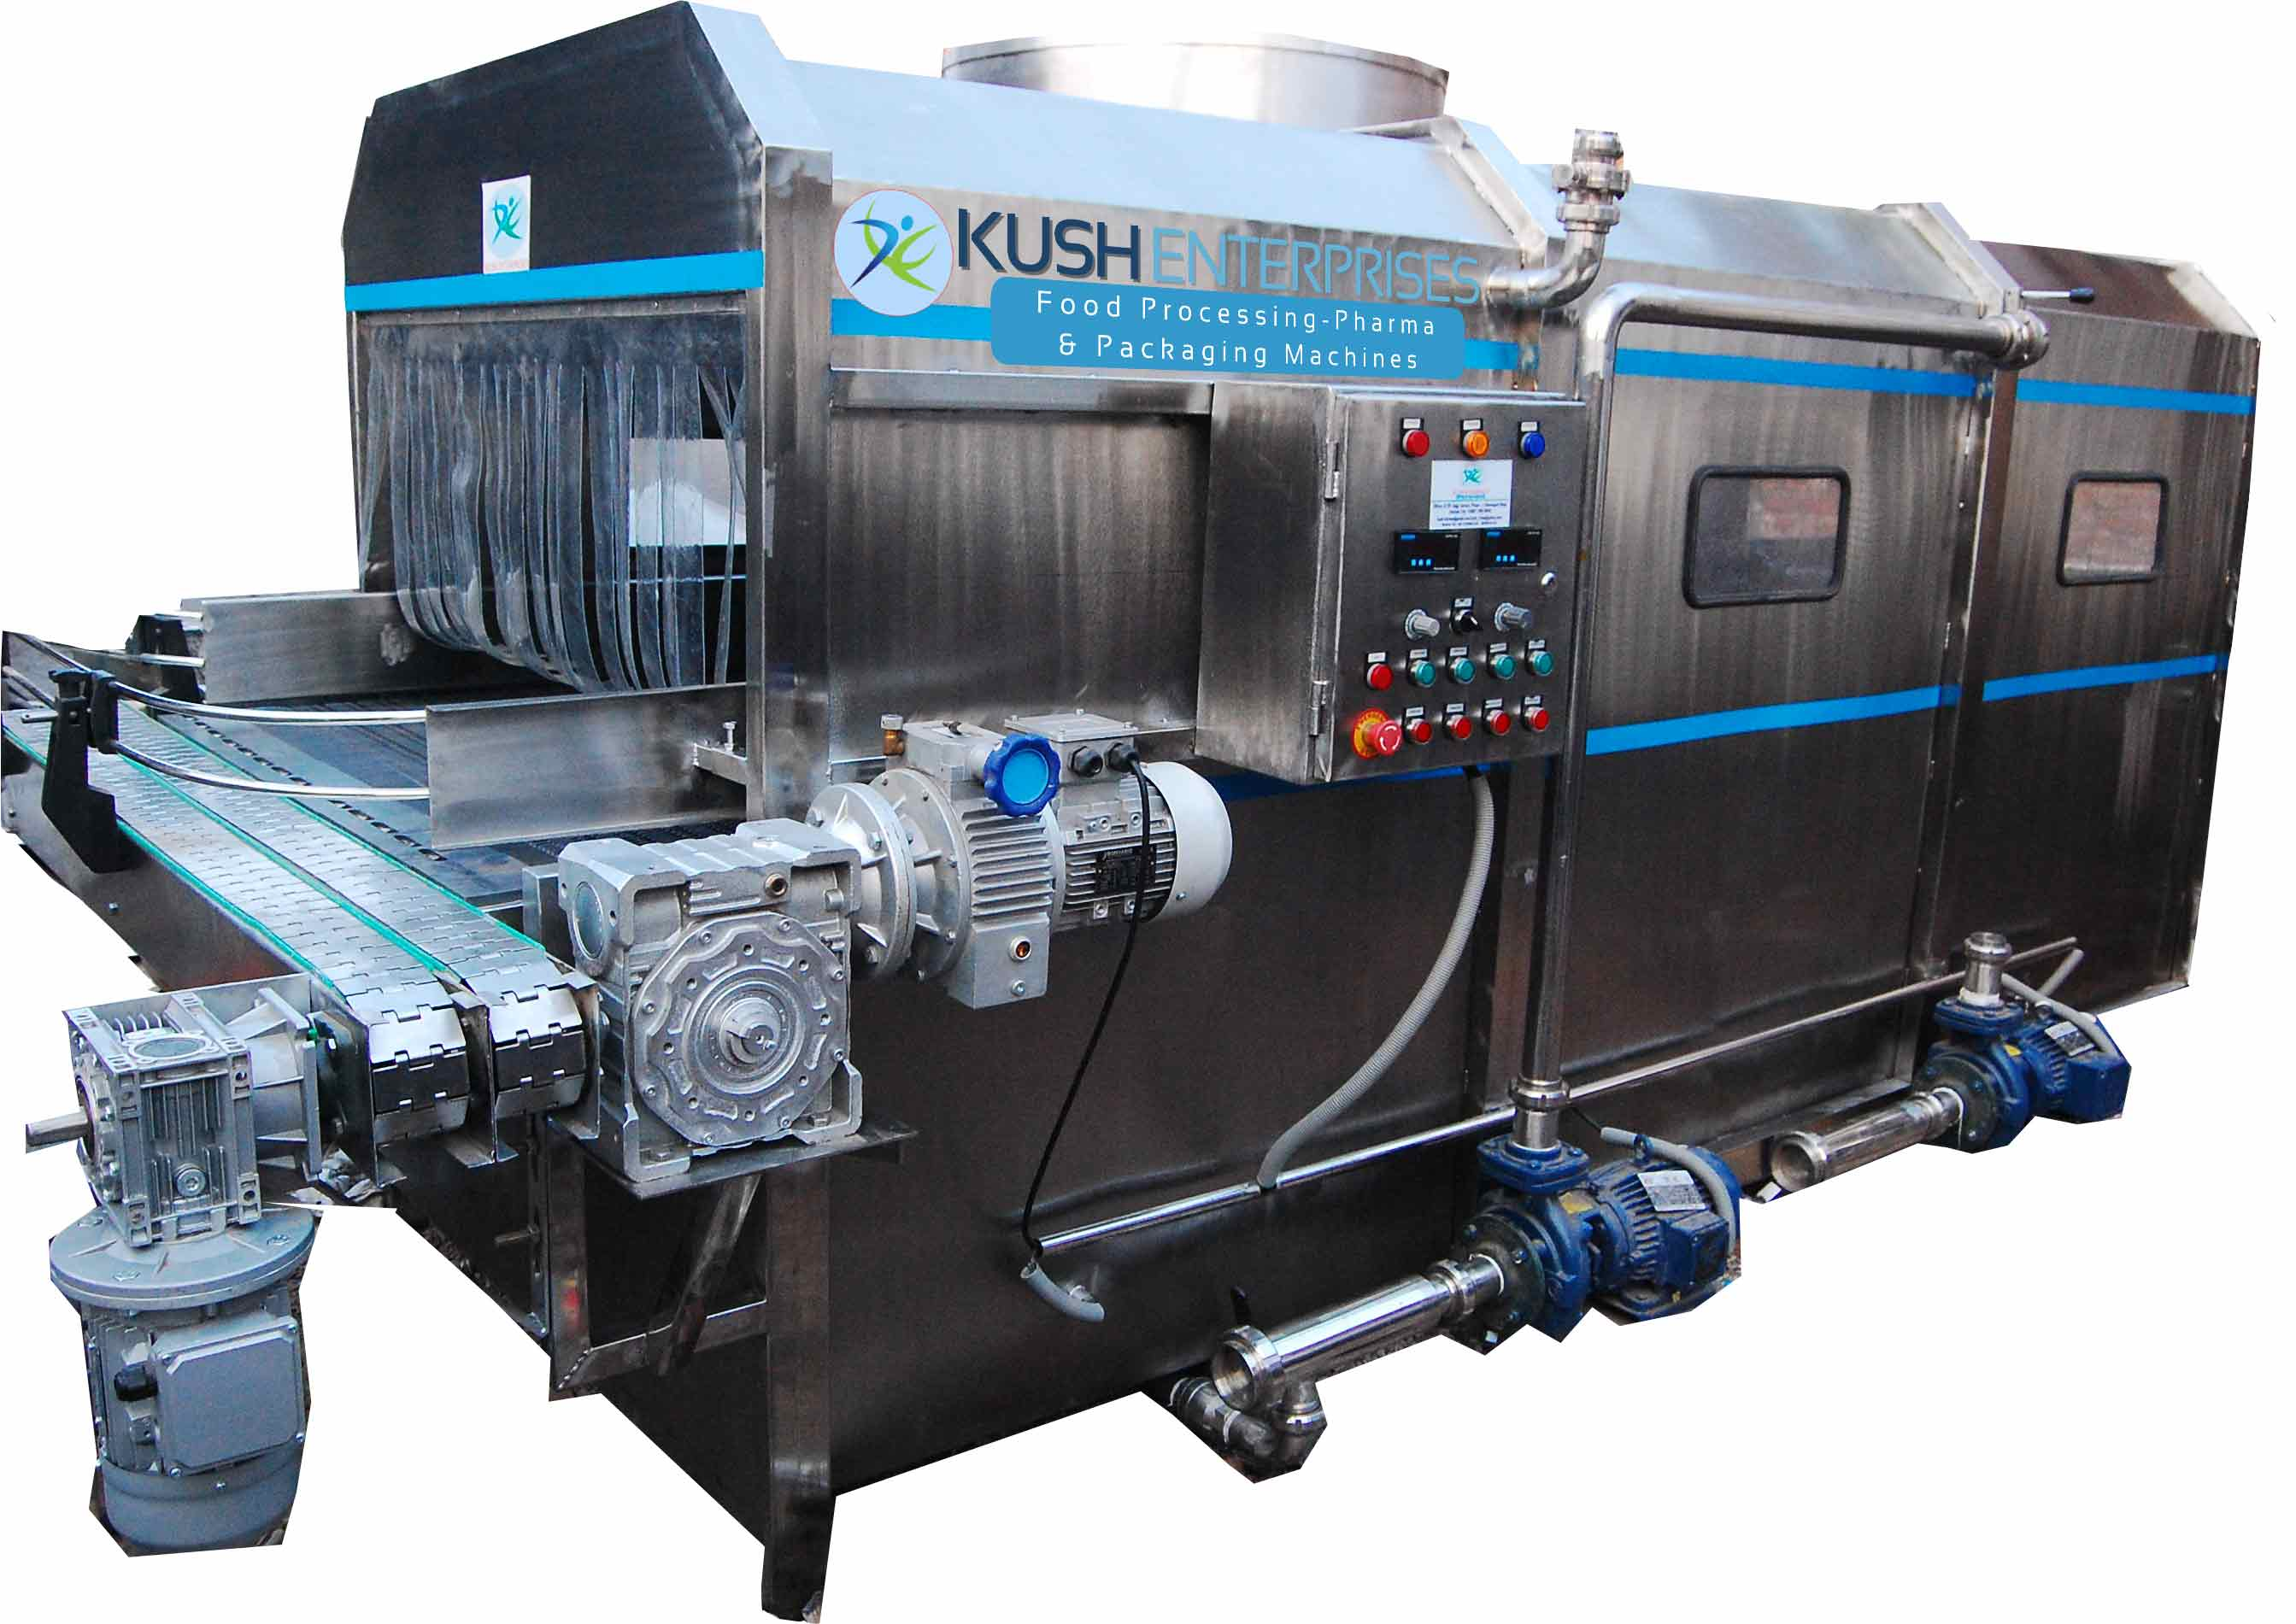 Kush Enterprises - Food Packaging & Processing Machines Manufacturer